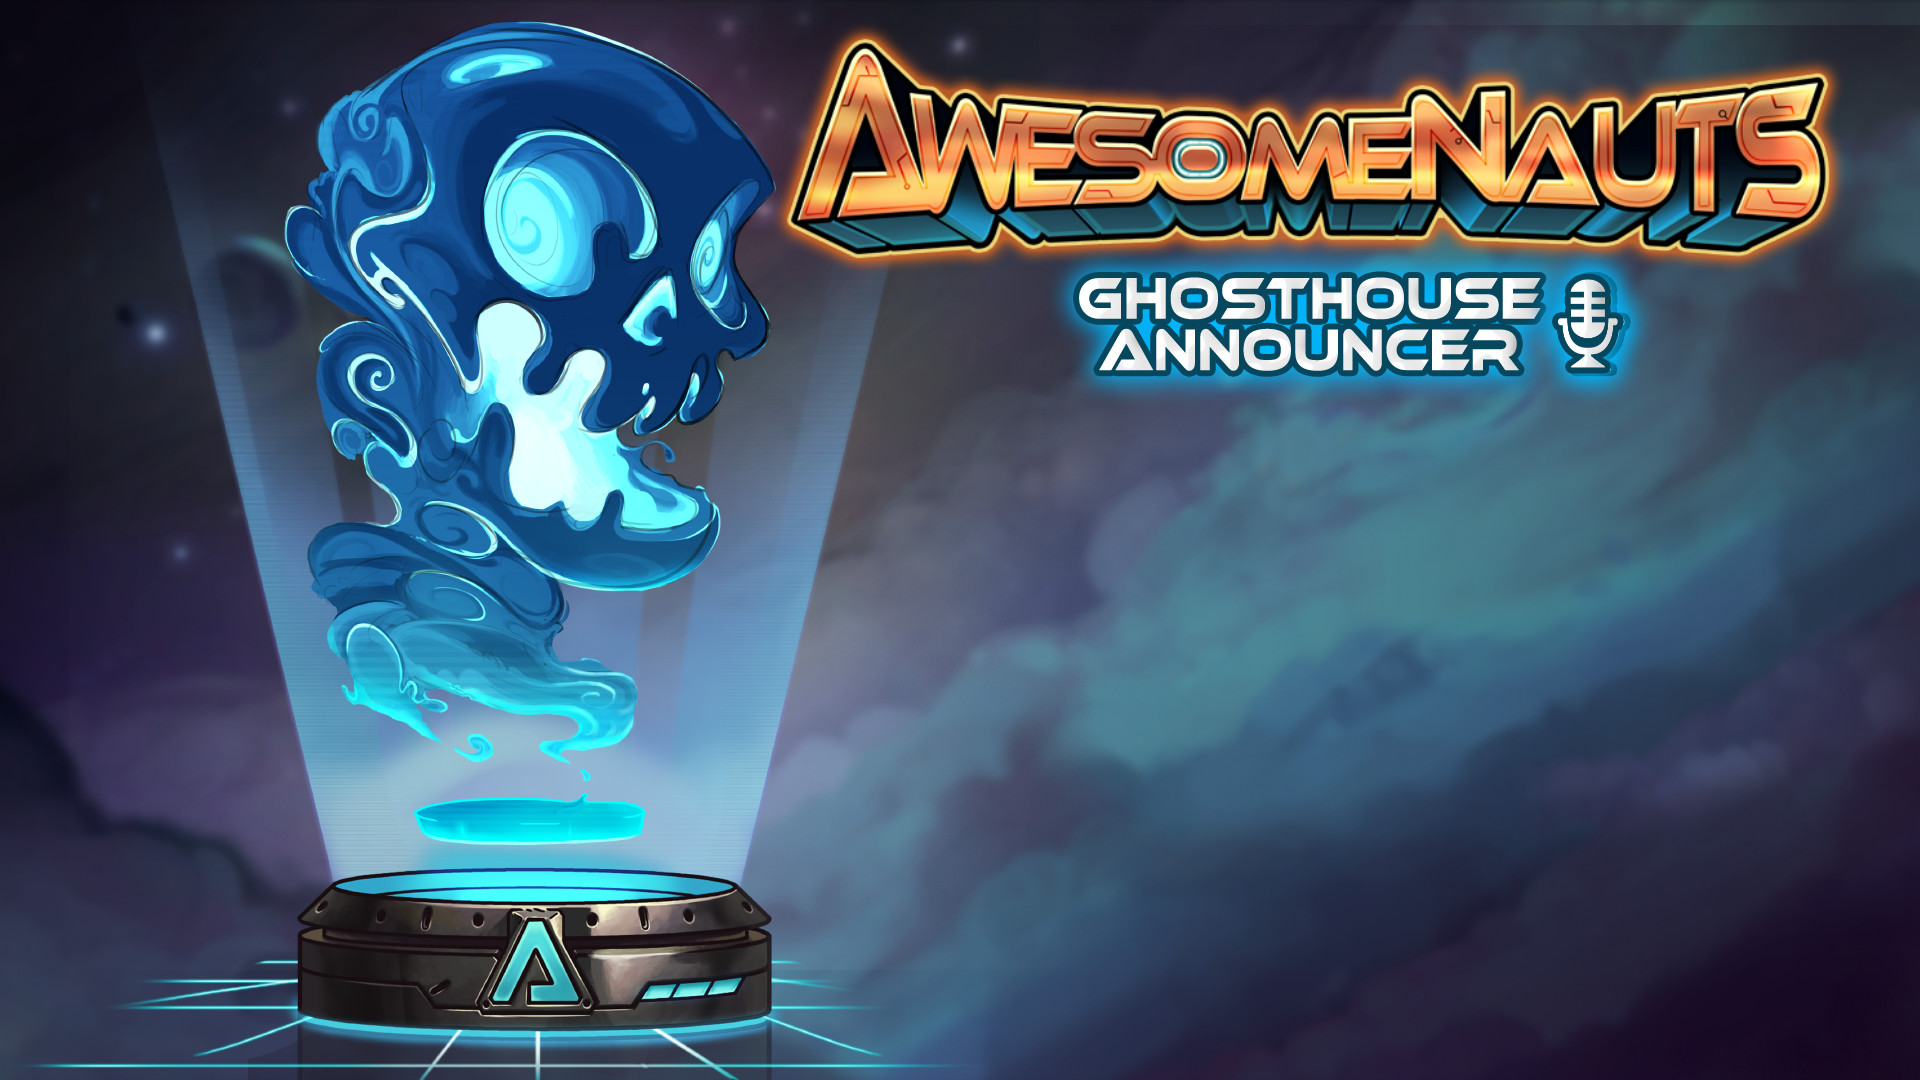 Awesomenauts - Ghosthouse Announcer screenshot